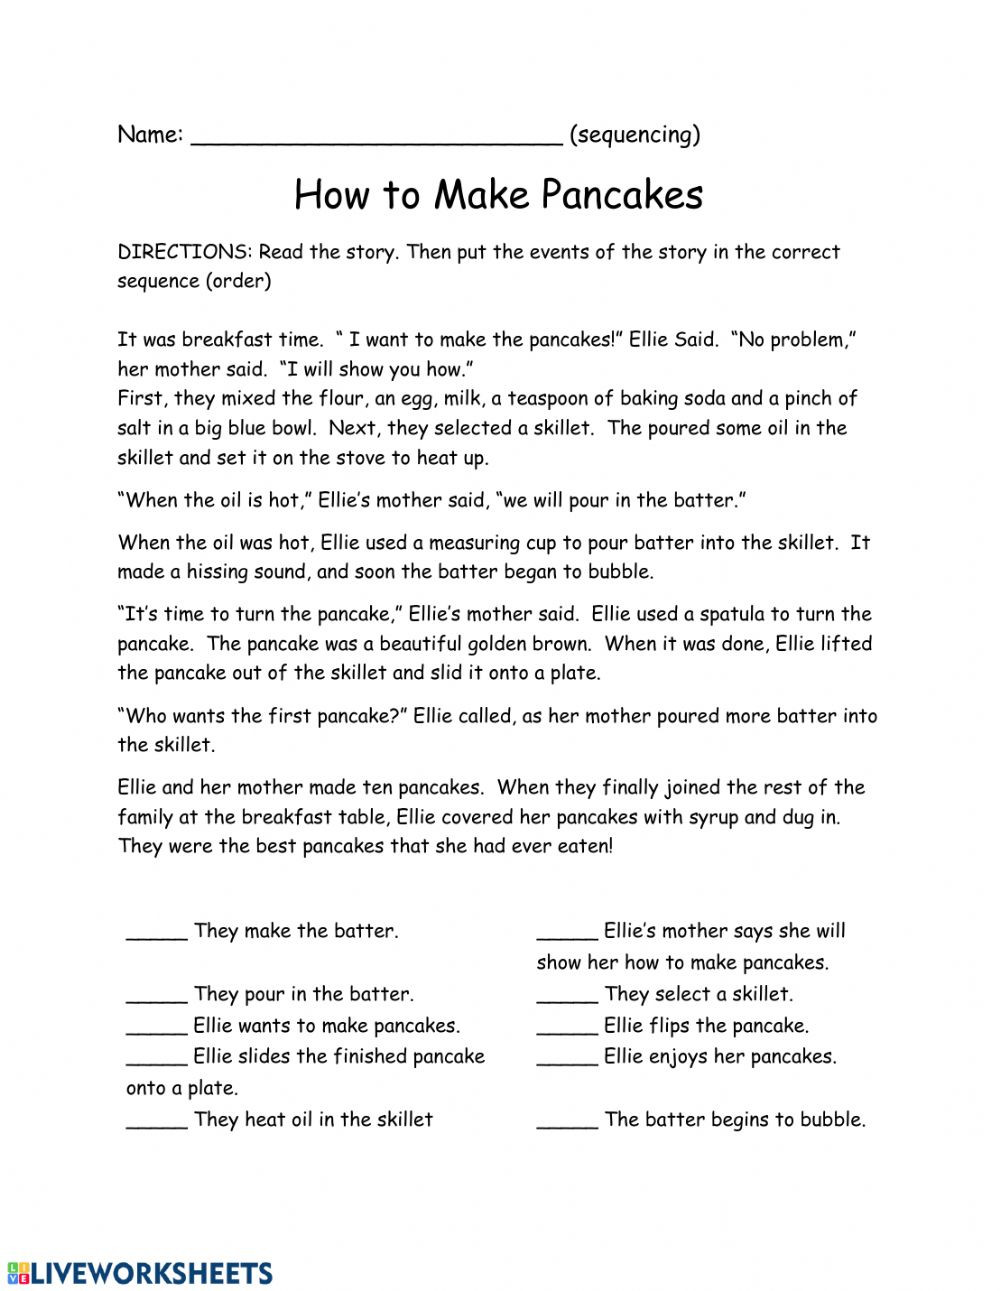 3rd Grade Sequencing Worksheets Sequence How to Make Pancakes Interactive Worksheet